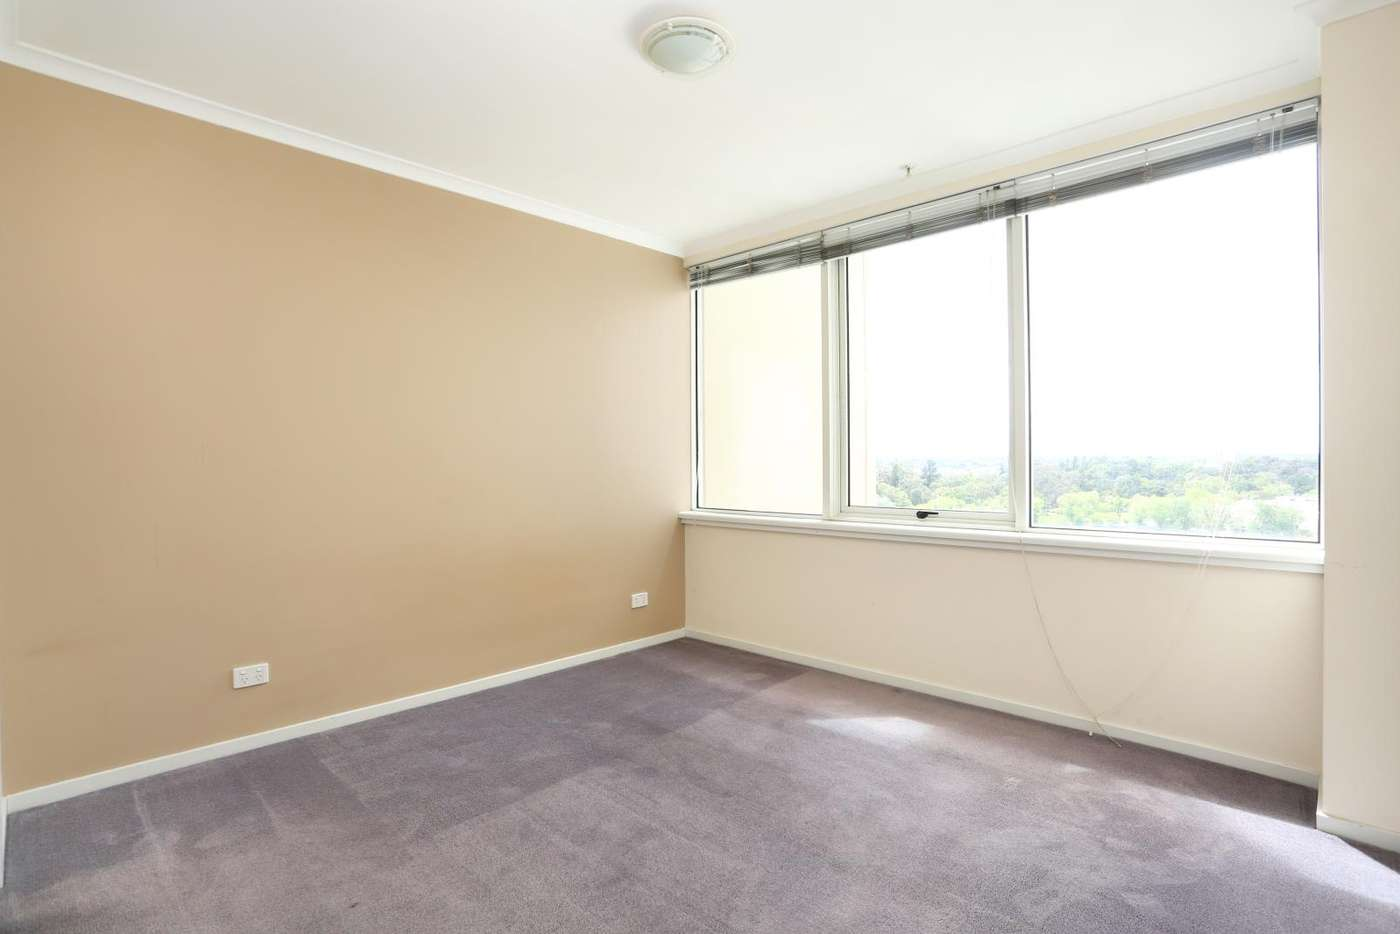 Sixth view of Homely apartment listing, 167/416 St Kilda Road, Melbourne VIC 3004